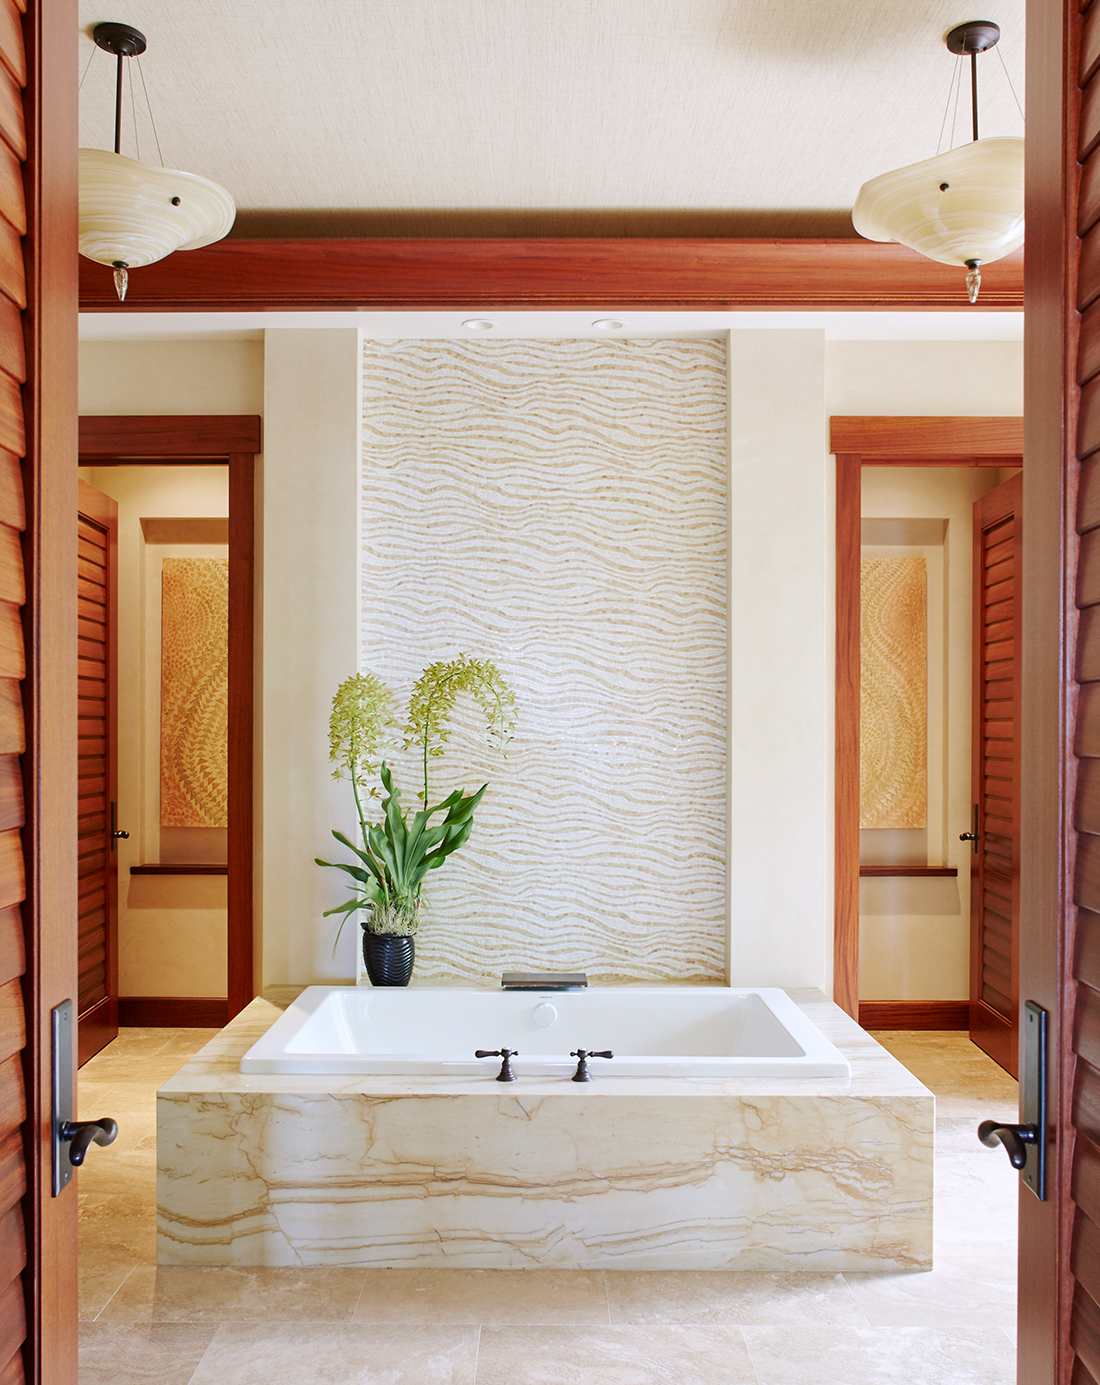 Residence at The Four Seasons Hualalai - En Suite Bathroom - Blessings of a Golden Rose 1 & 2 - see process page in the painting page dropdown for more details